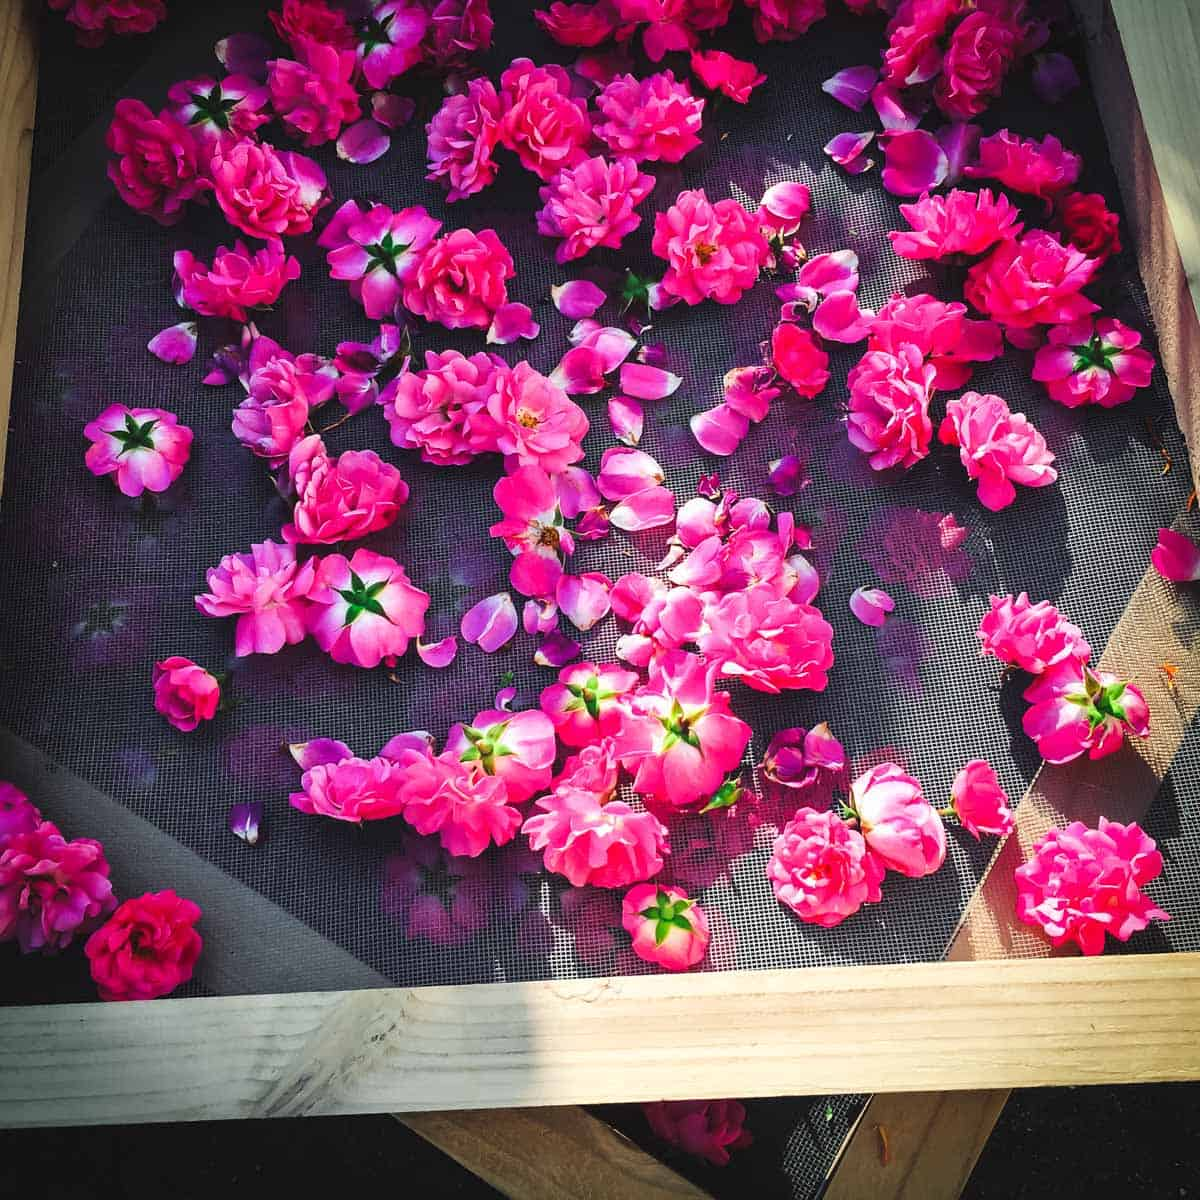 fresh pink roses on a drying screen